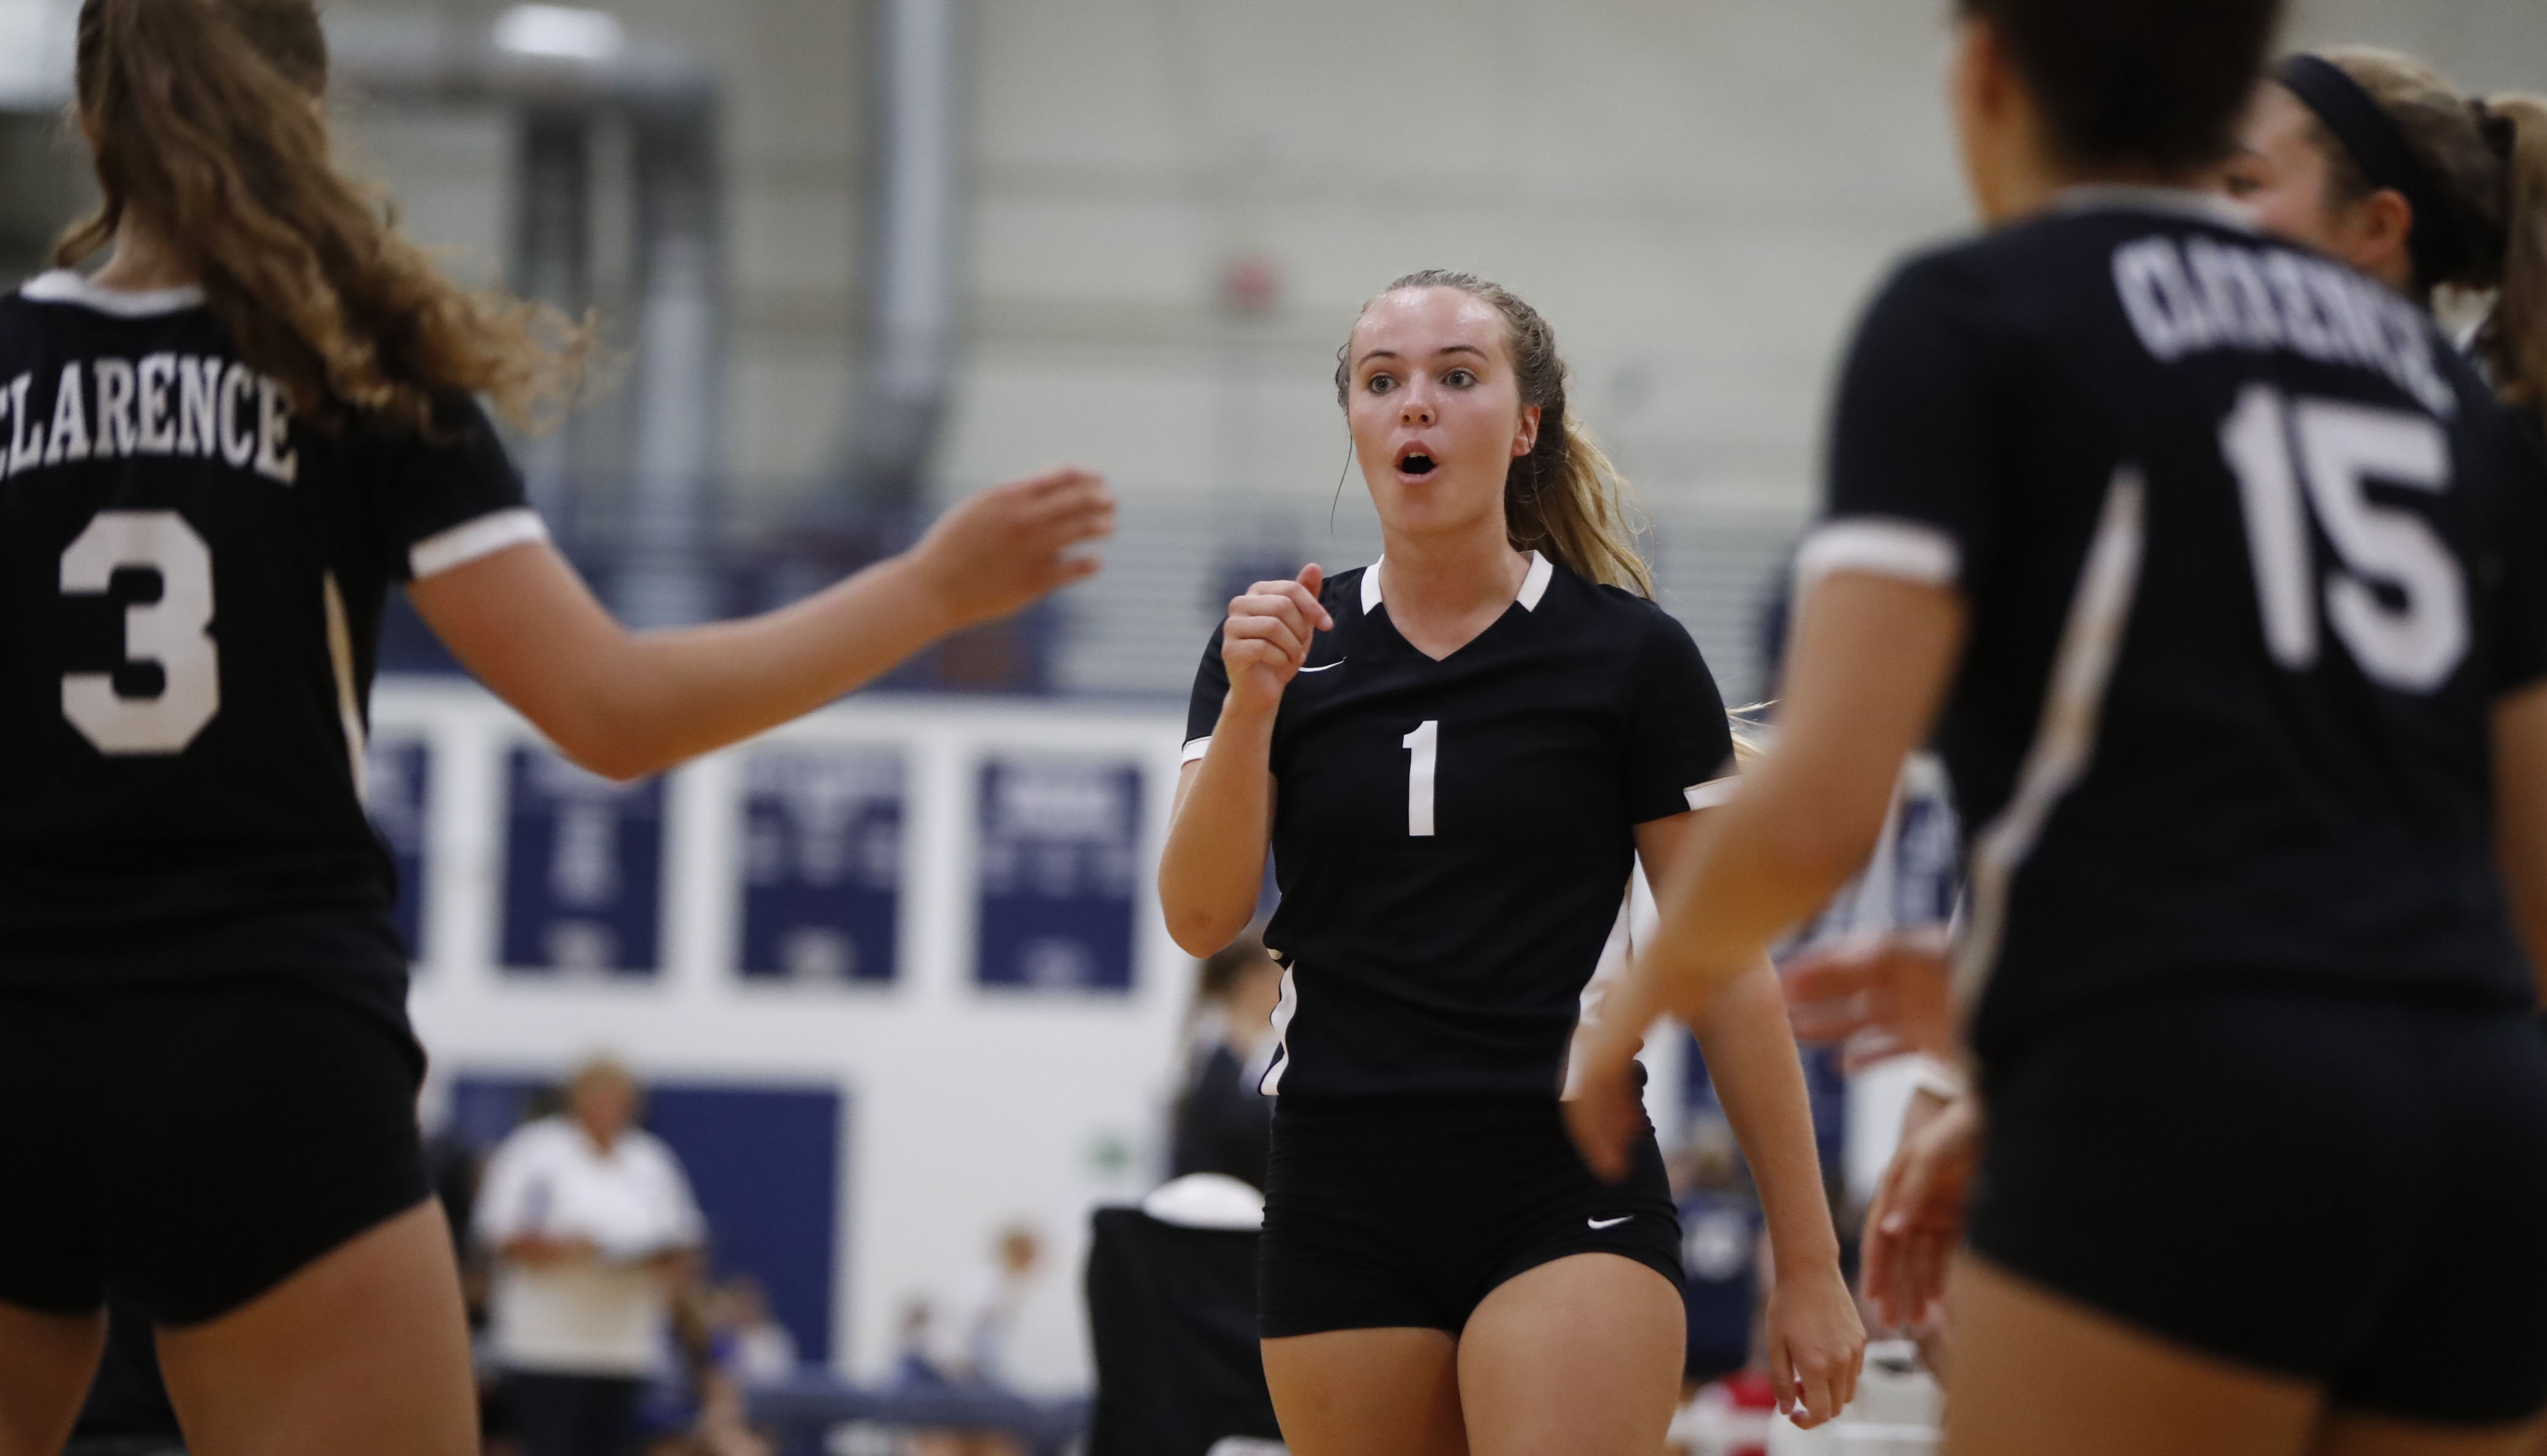 Meghan Neelon (1) and Clarence retain the No. 1 spot in the girls volleyball large schools pool, although the margin is slimming. (Harry Scull Jr./Buffalo News)